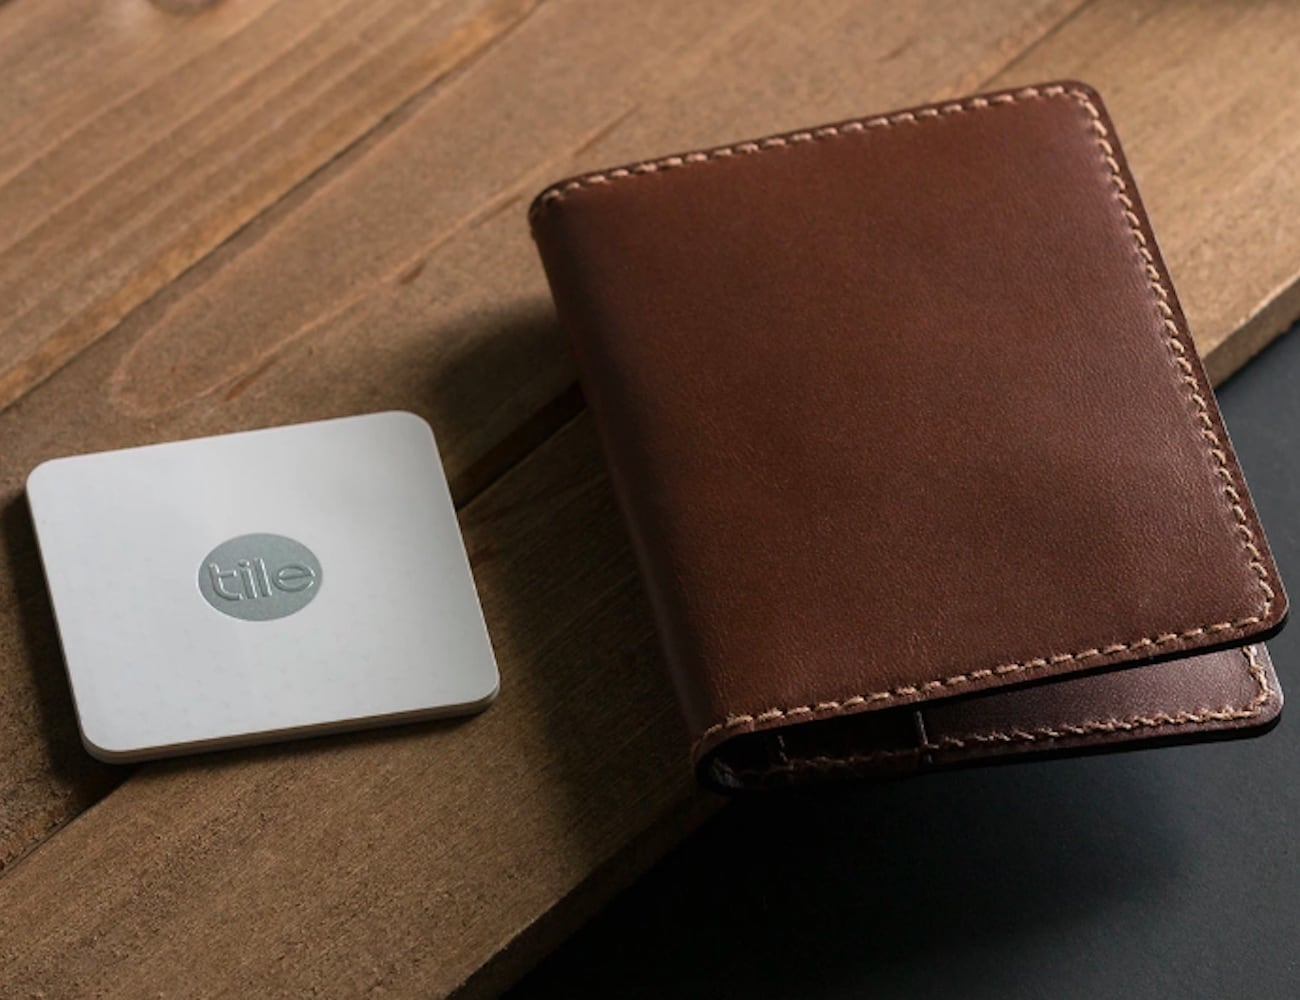 The Tile Slim Tracking Wallet by Nomad Combines Looks and ...